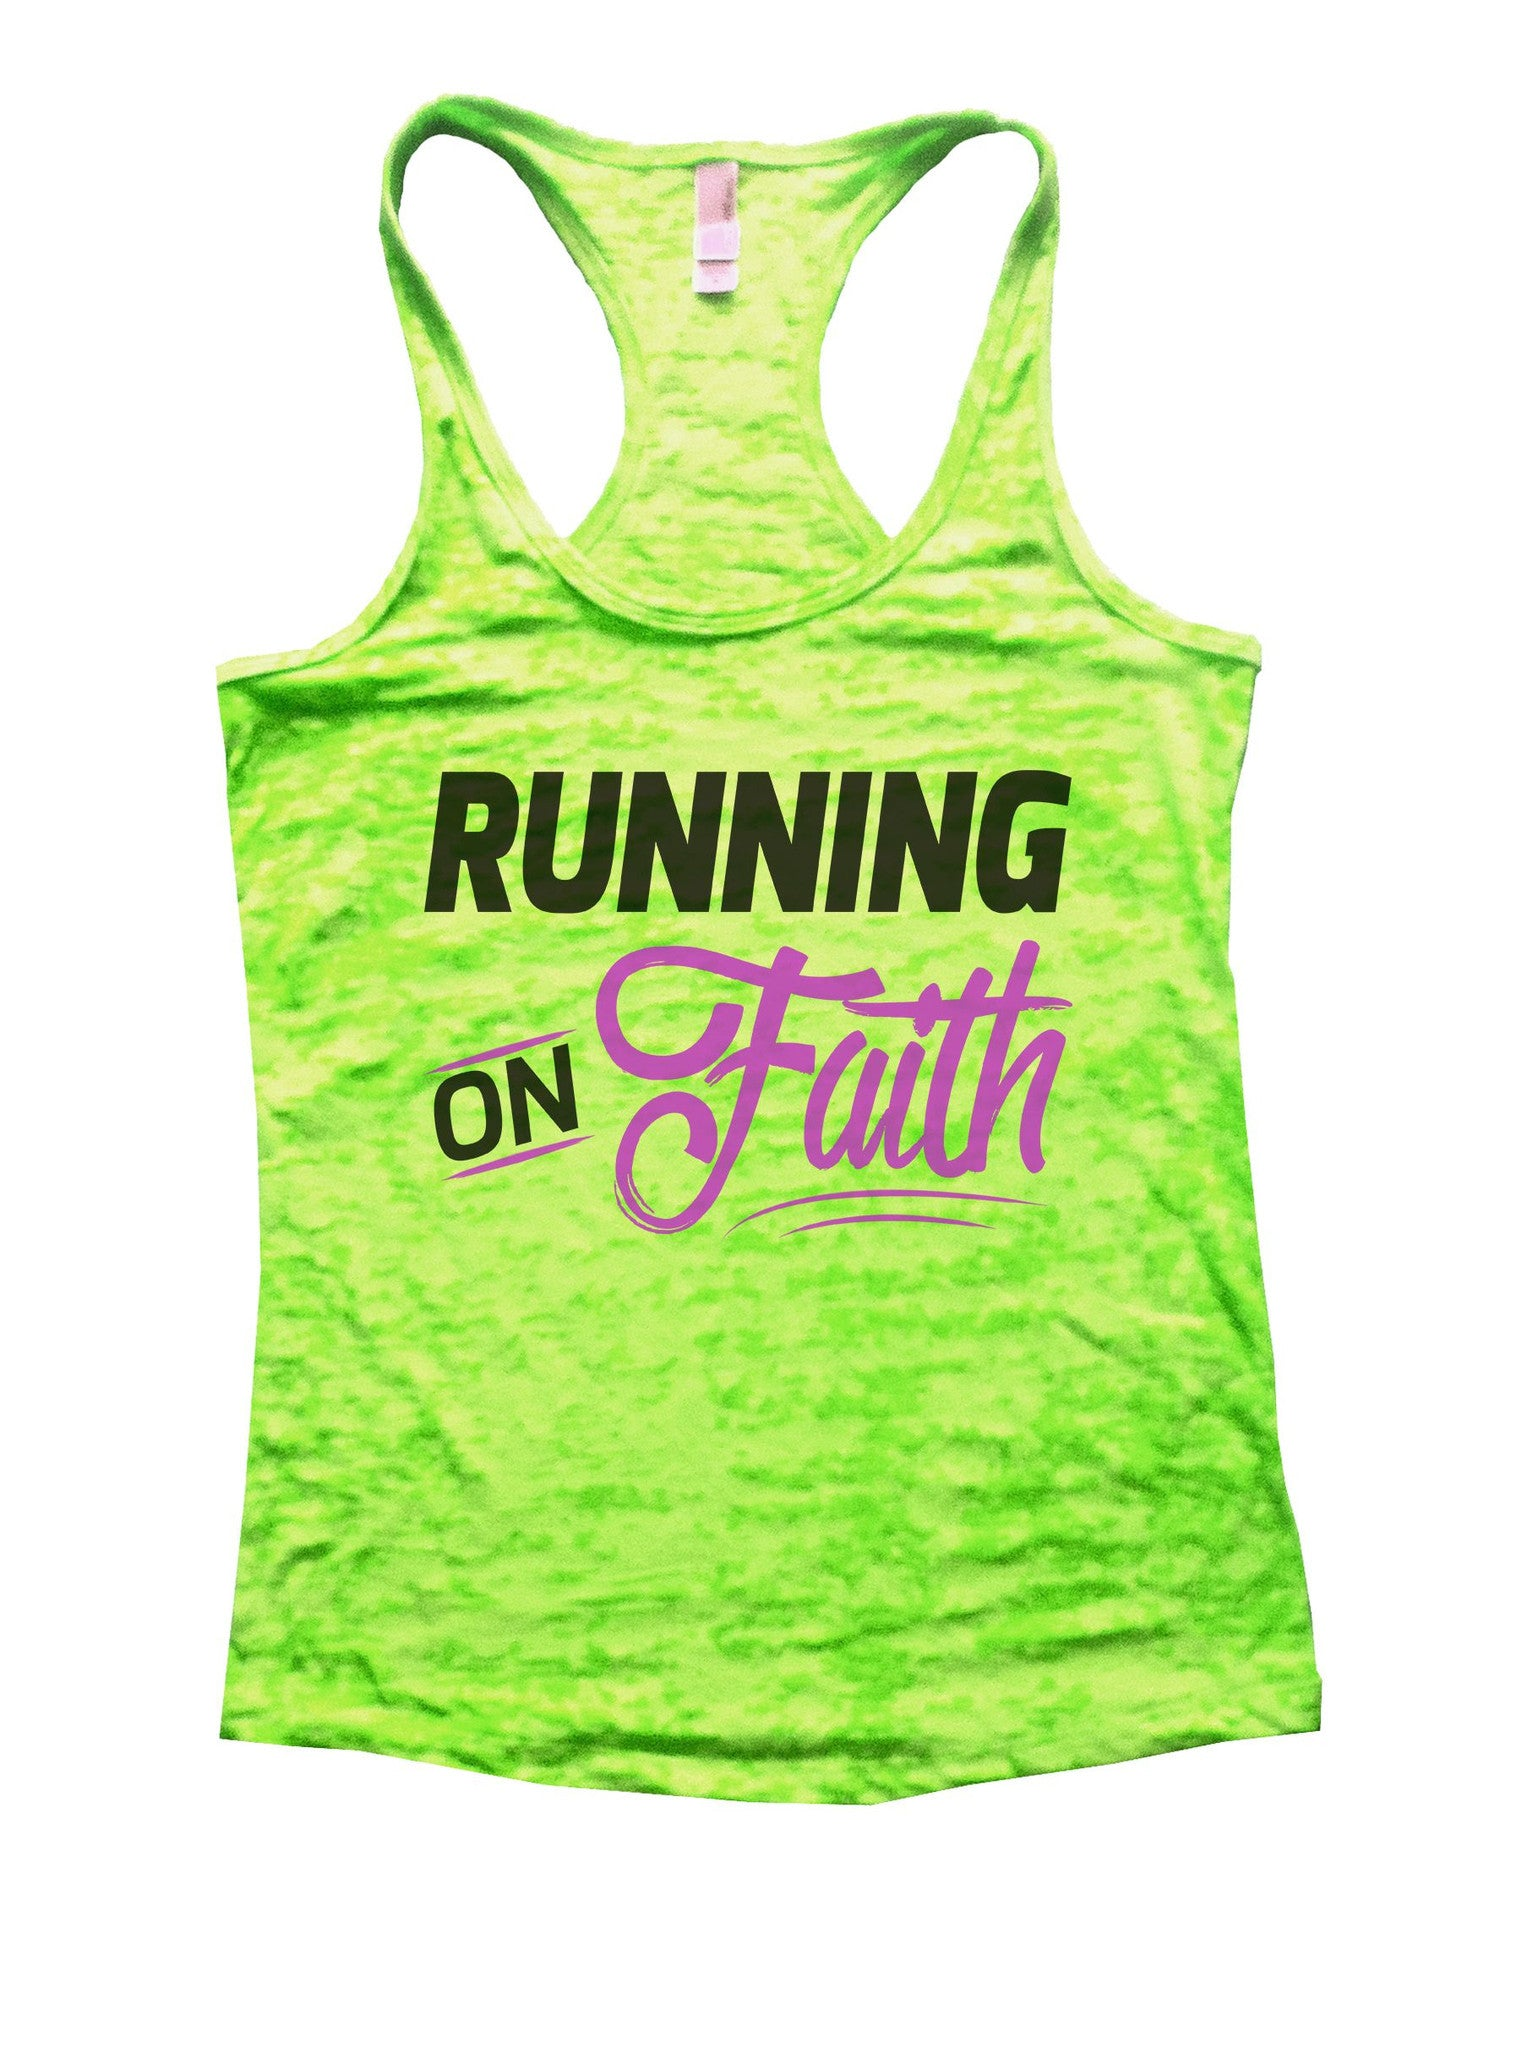 Running On Faith Burnout Tank Top By BurnoutTankTops.com - 1073 - Funny Shirts Tank Tops Burnouts and Triblends  - 1